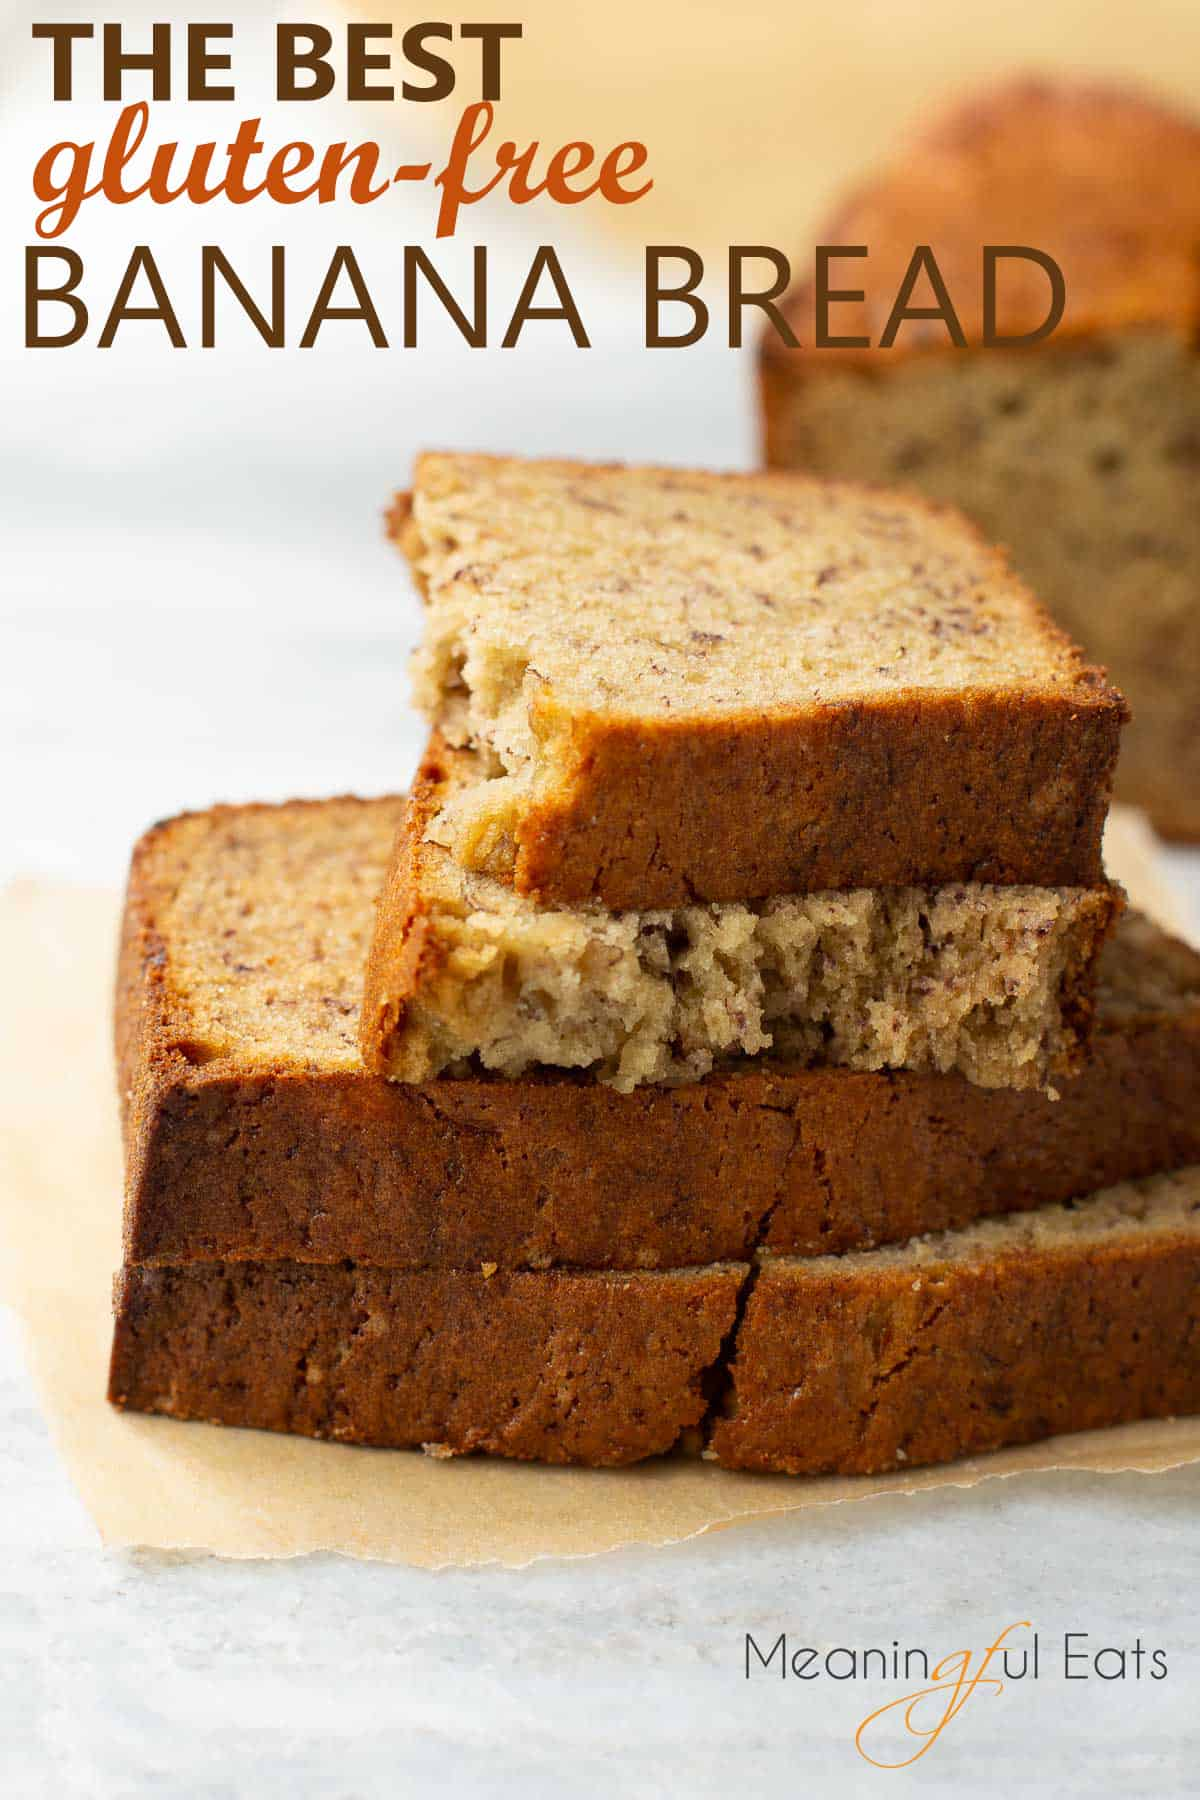 image for pinterest with stacked gluten-free banana bread